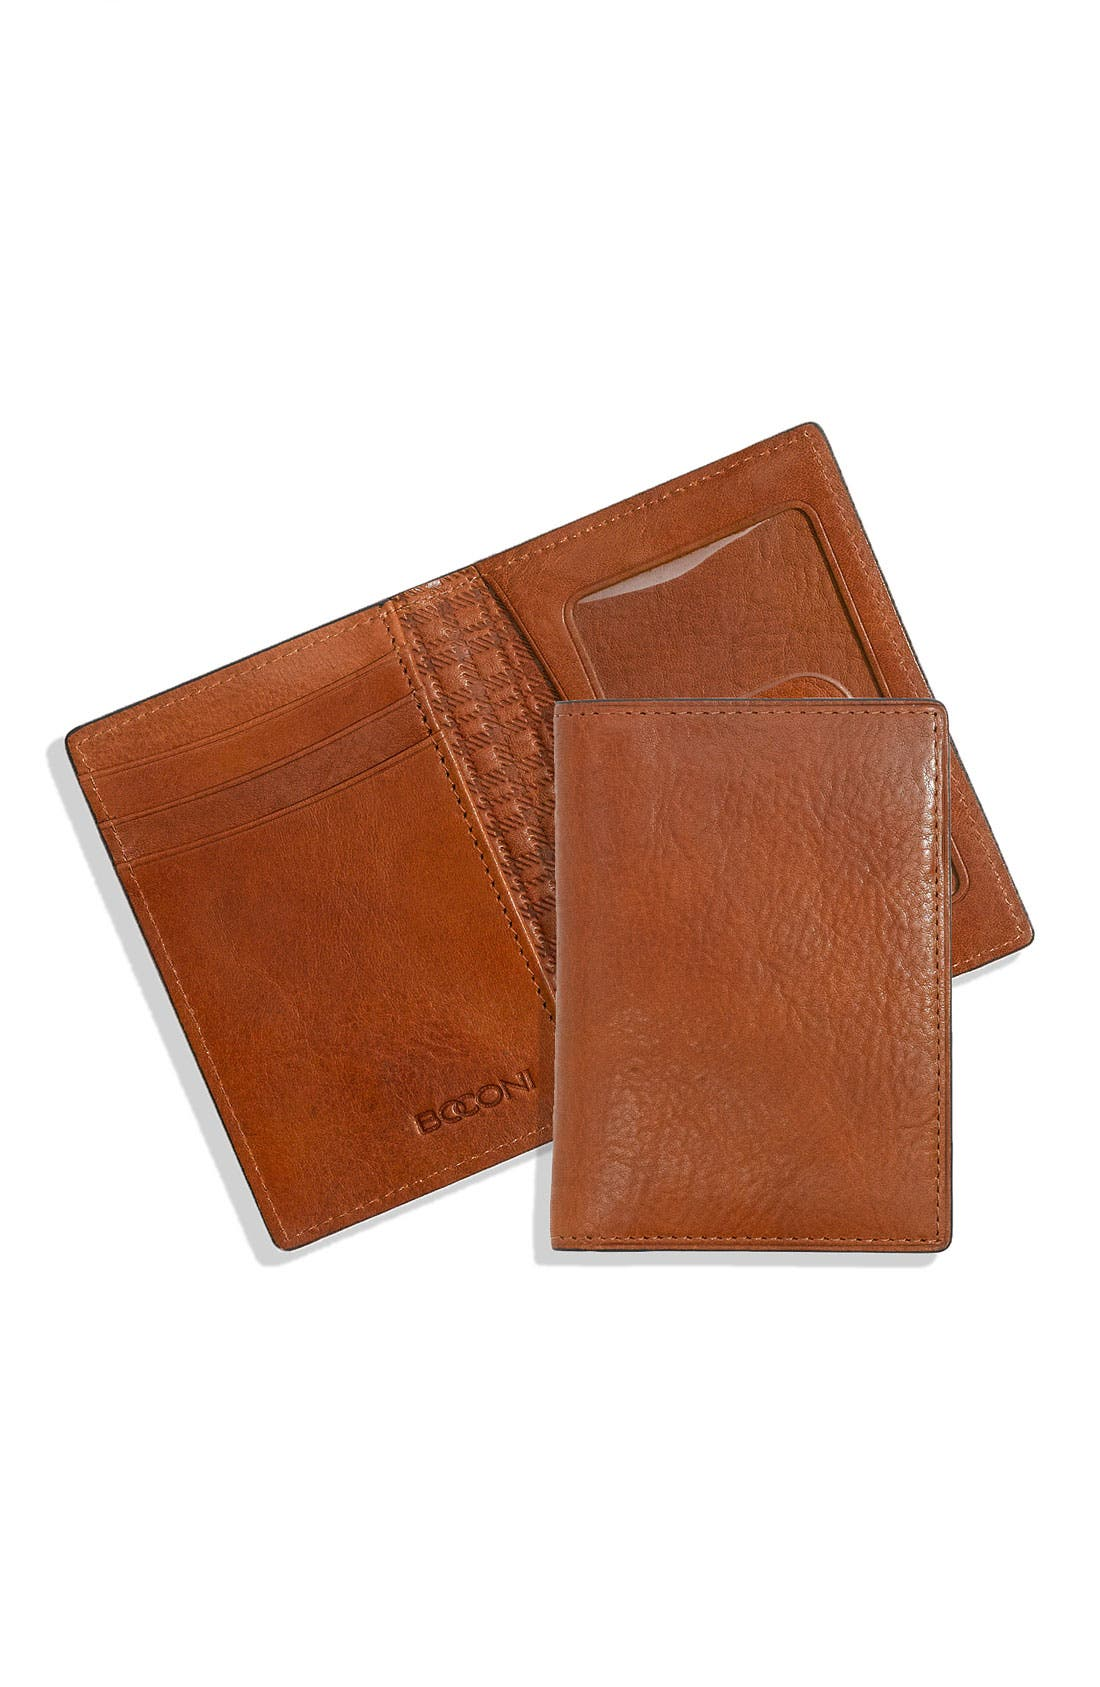 Main Image - Boconi 'Rinaldo' Slim Card Case